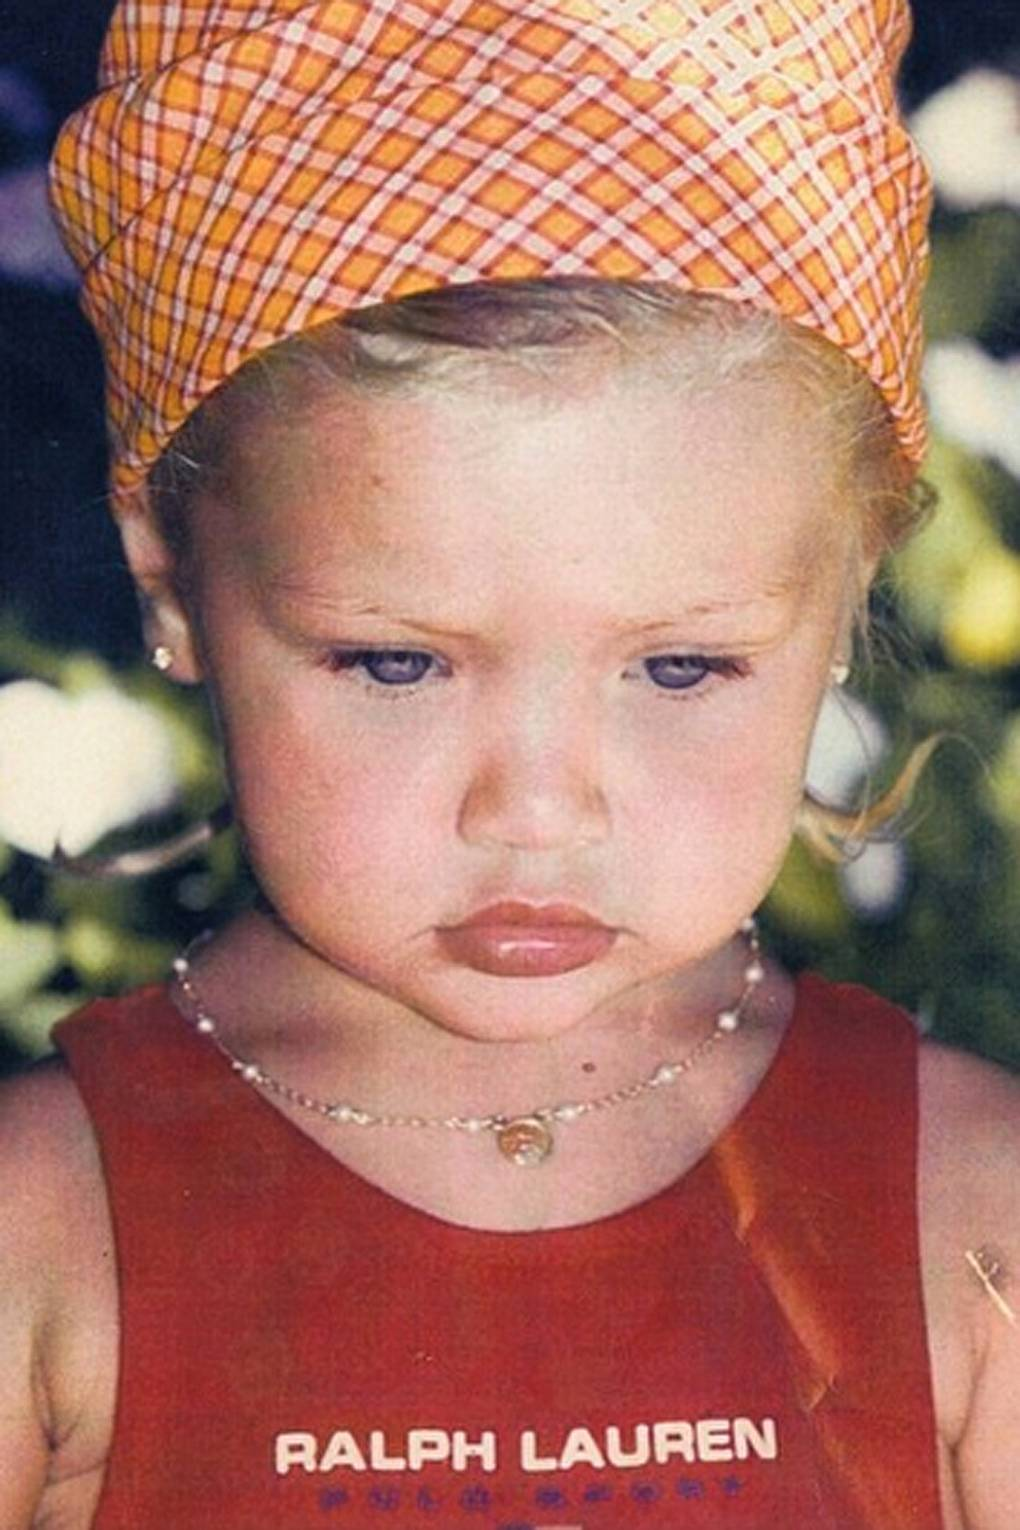 Supermodels As Babies And Children: Then And Now Of The